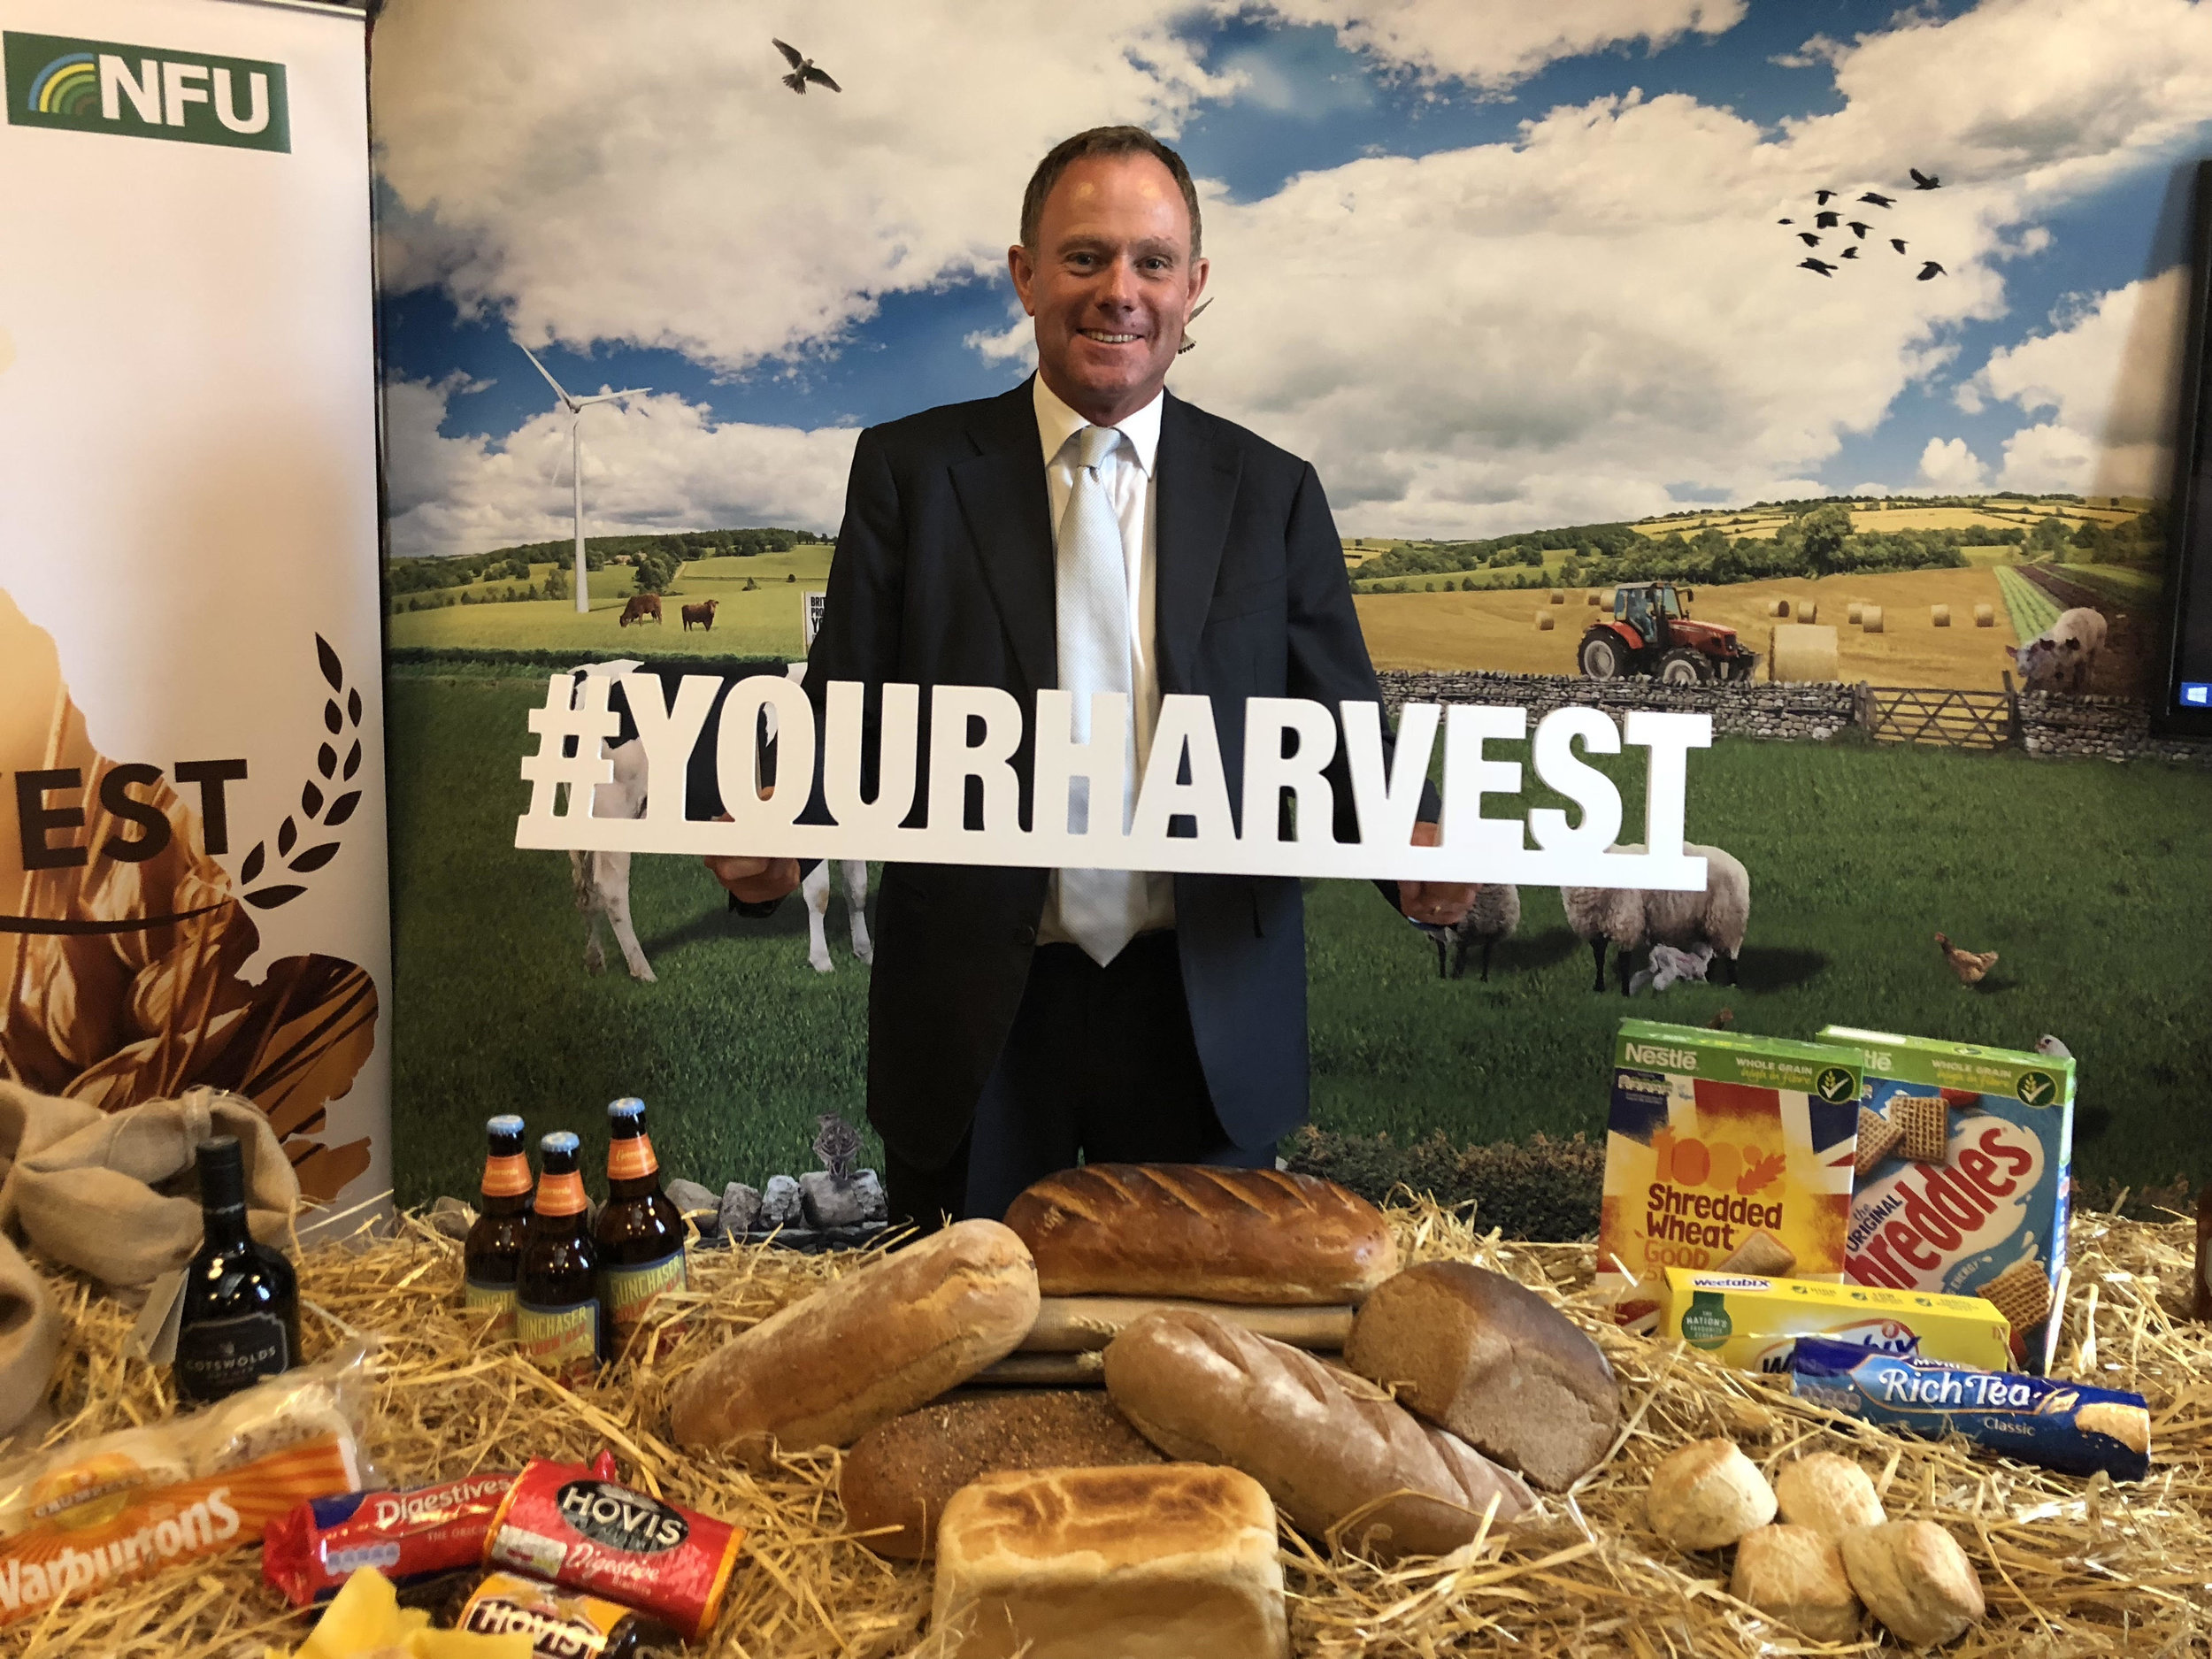 Nick Herbert MP (Arundel & South Downs) supporting the 'Your Harvest' event in Parliament hosted by the National Farmers' Union to promote cereal farming.